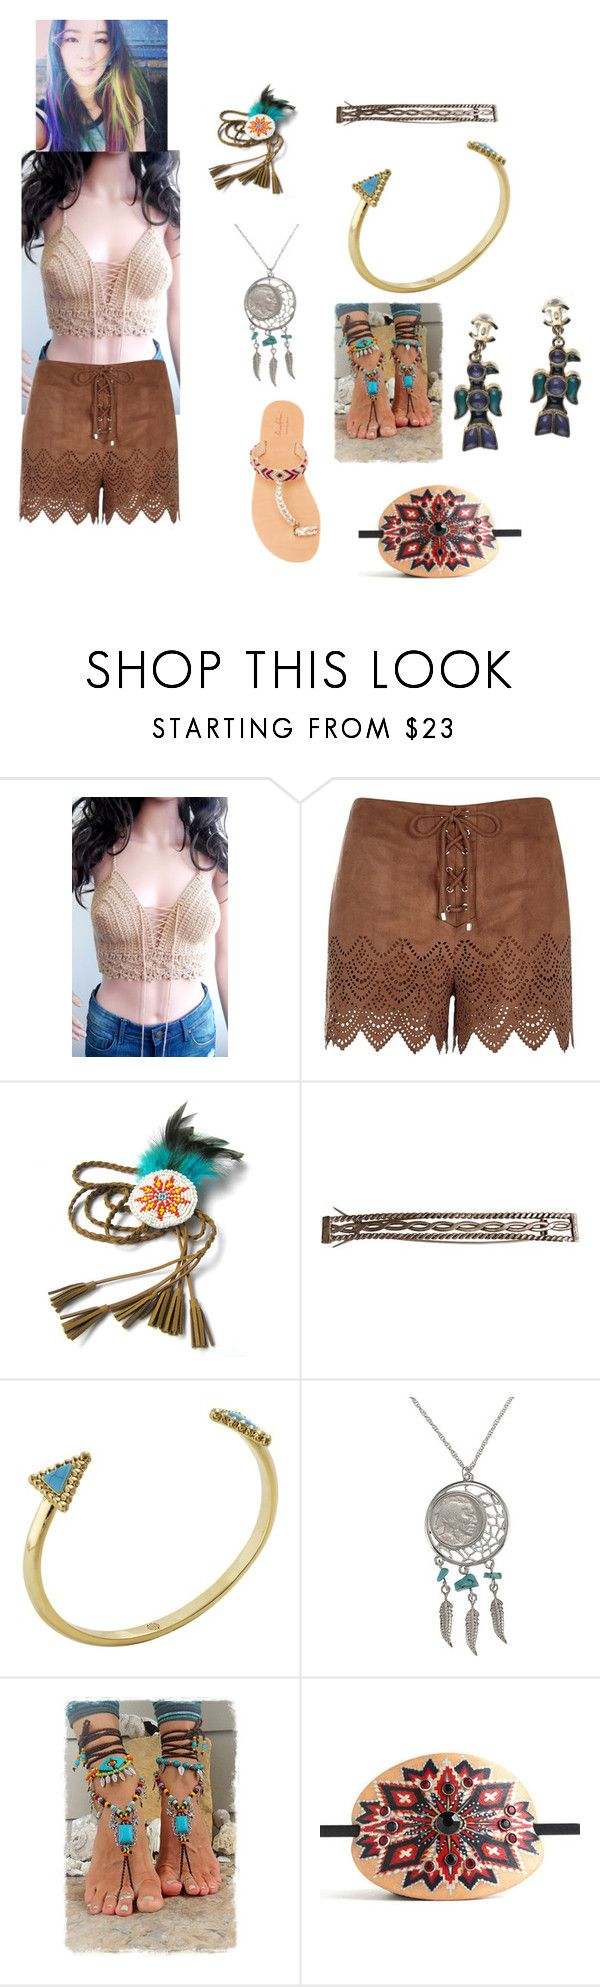 """Native look"" by mpickup ❤ liked on Polyvore featuring River Island, House of Harlow 1960, American Coin Treasures, Elina Lebessi and Chanel"